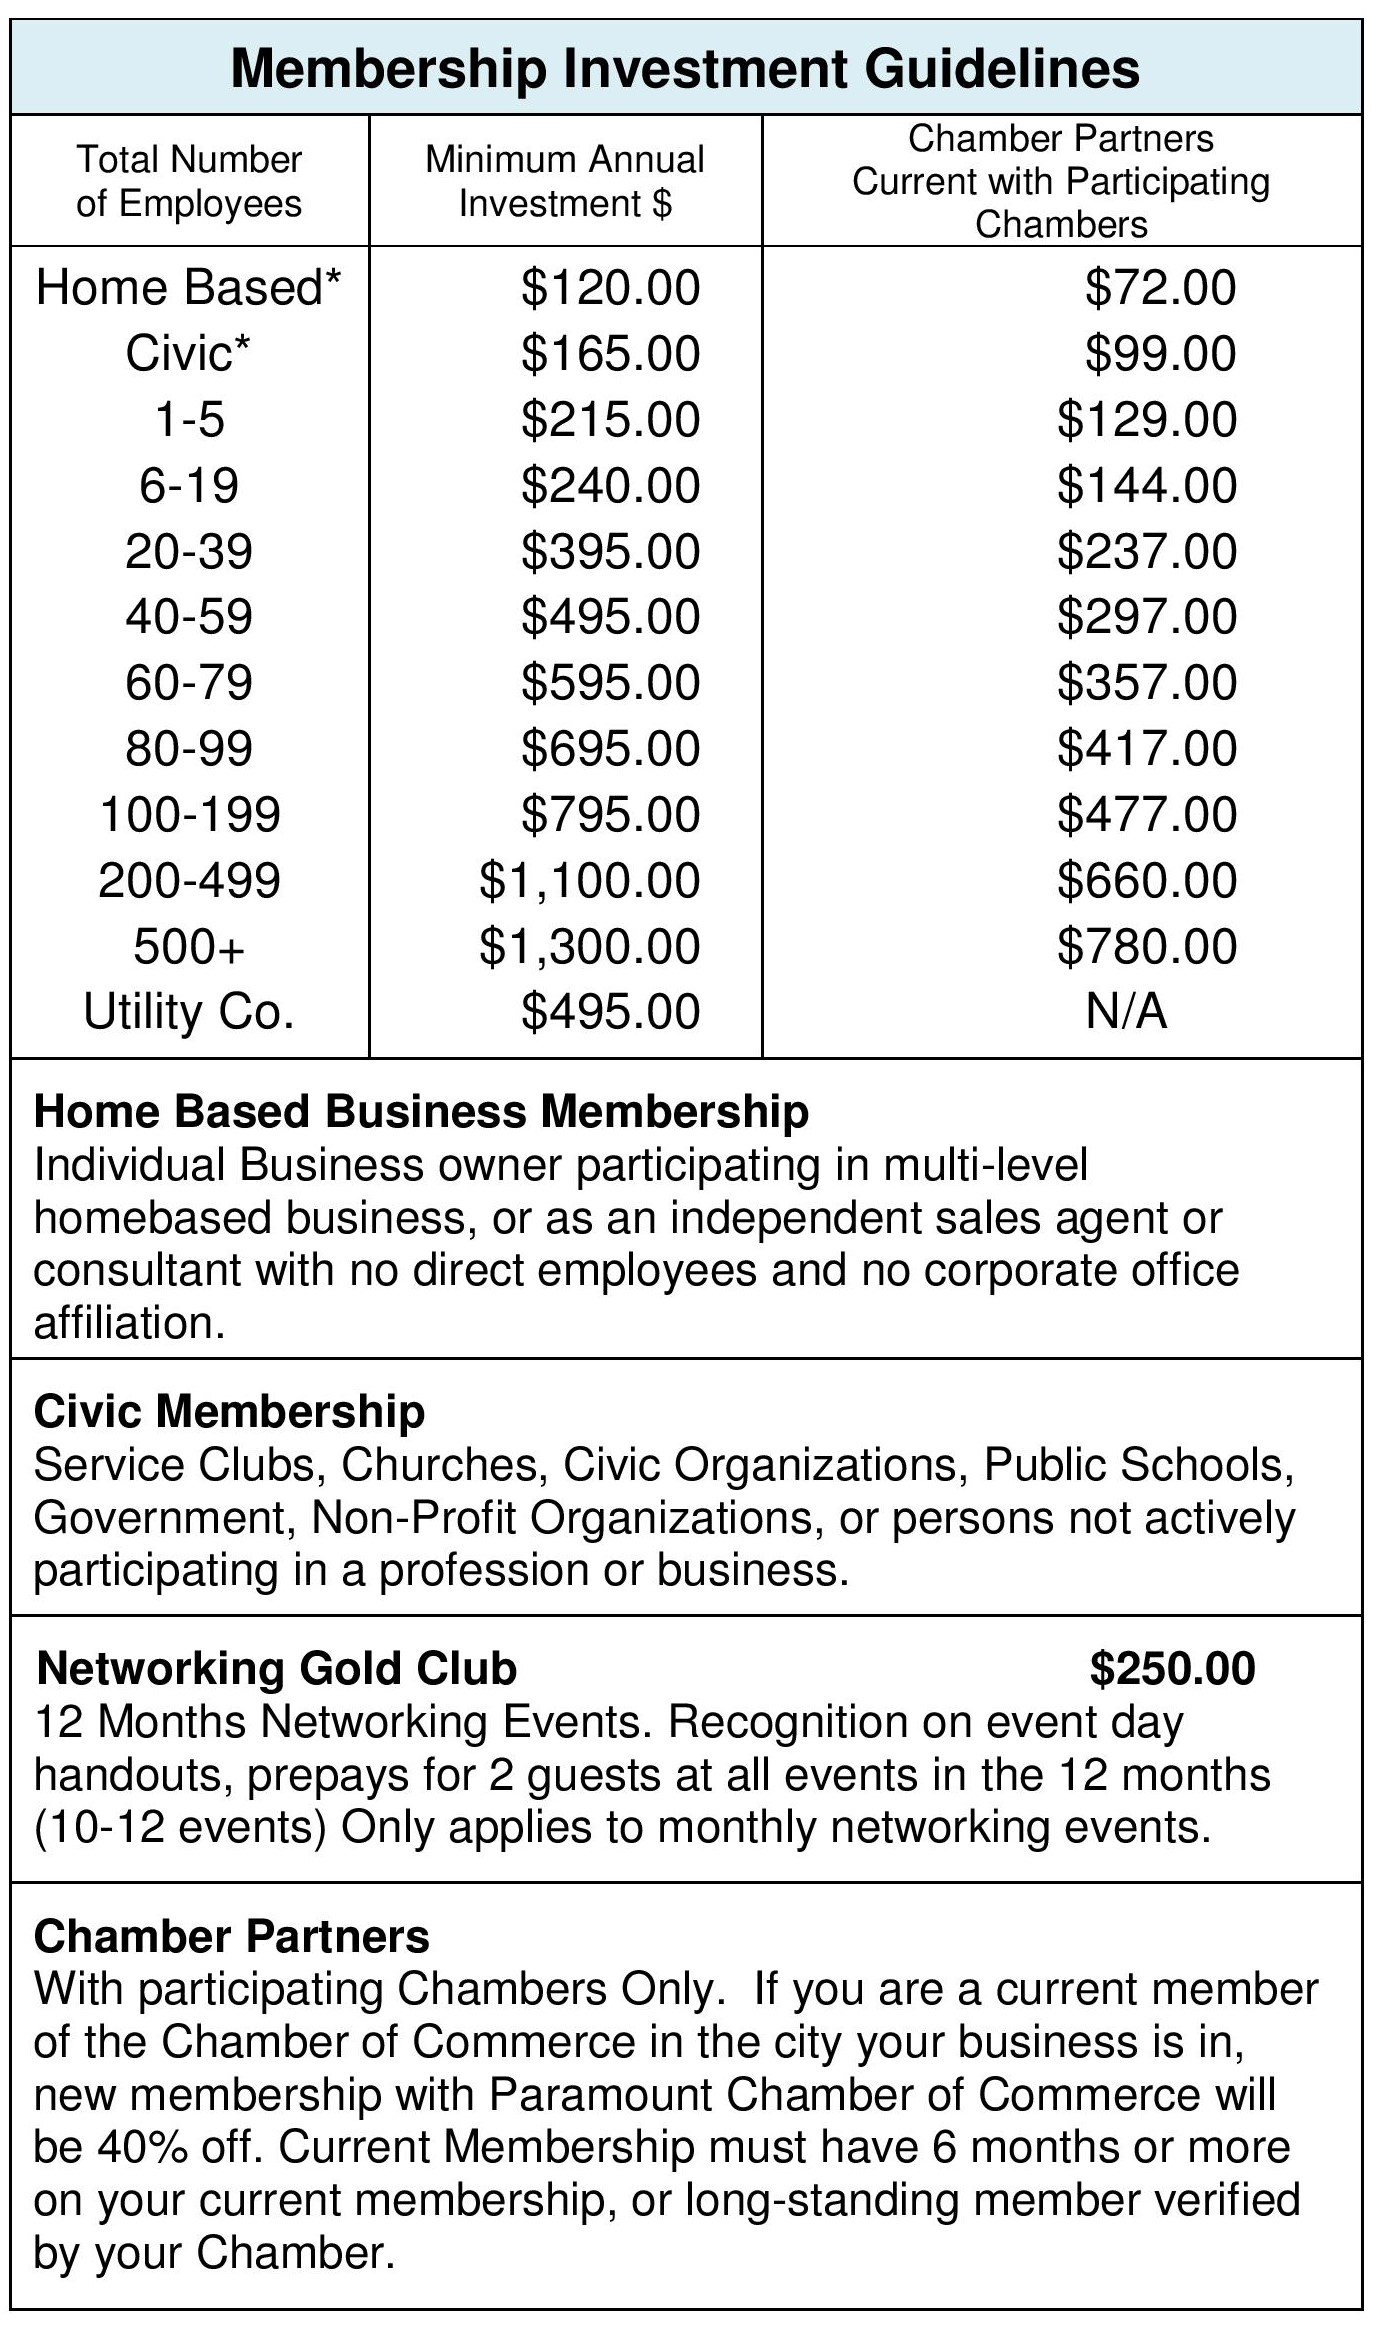 Membership Investment Guidelines